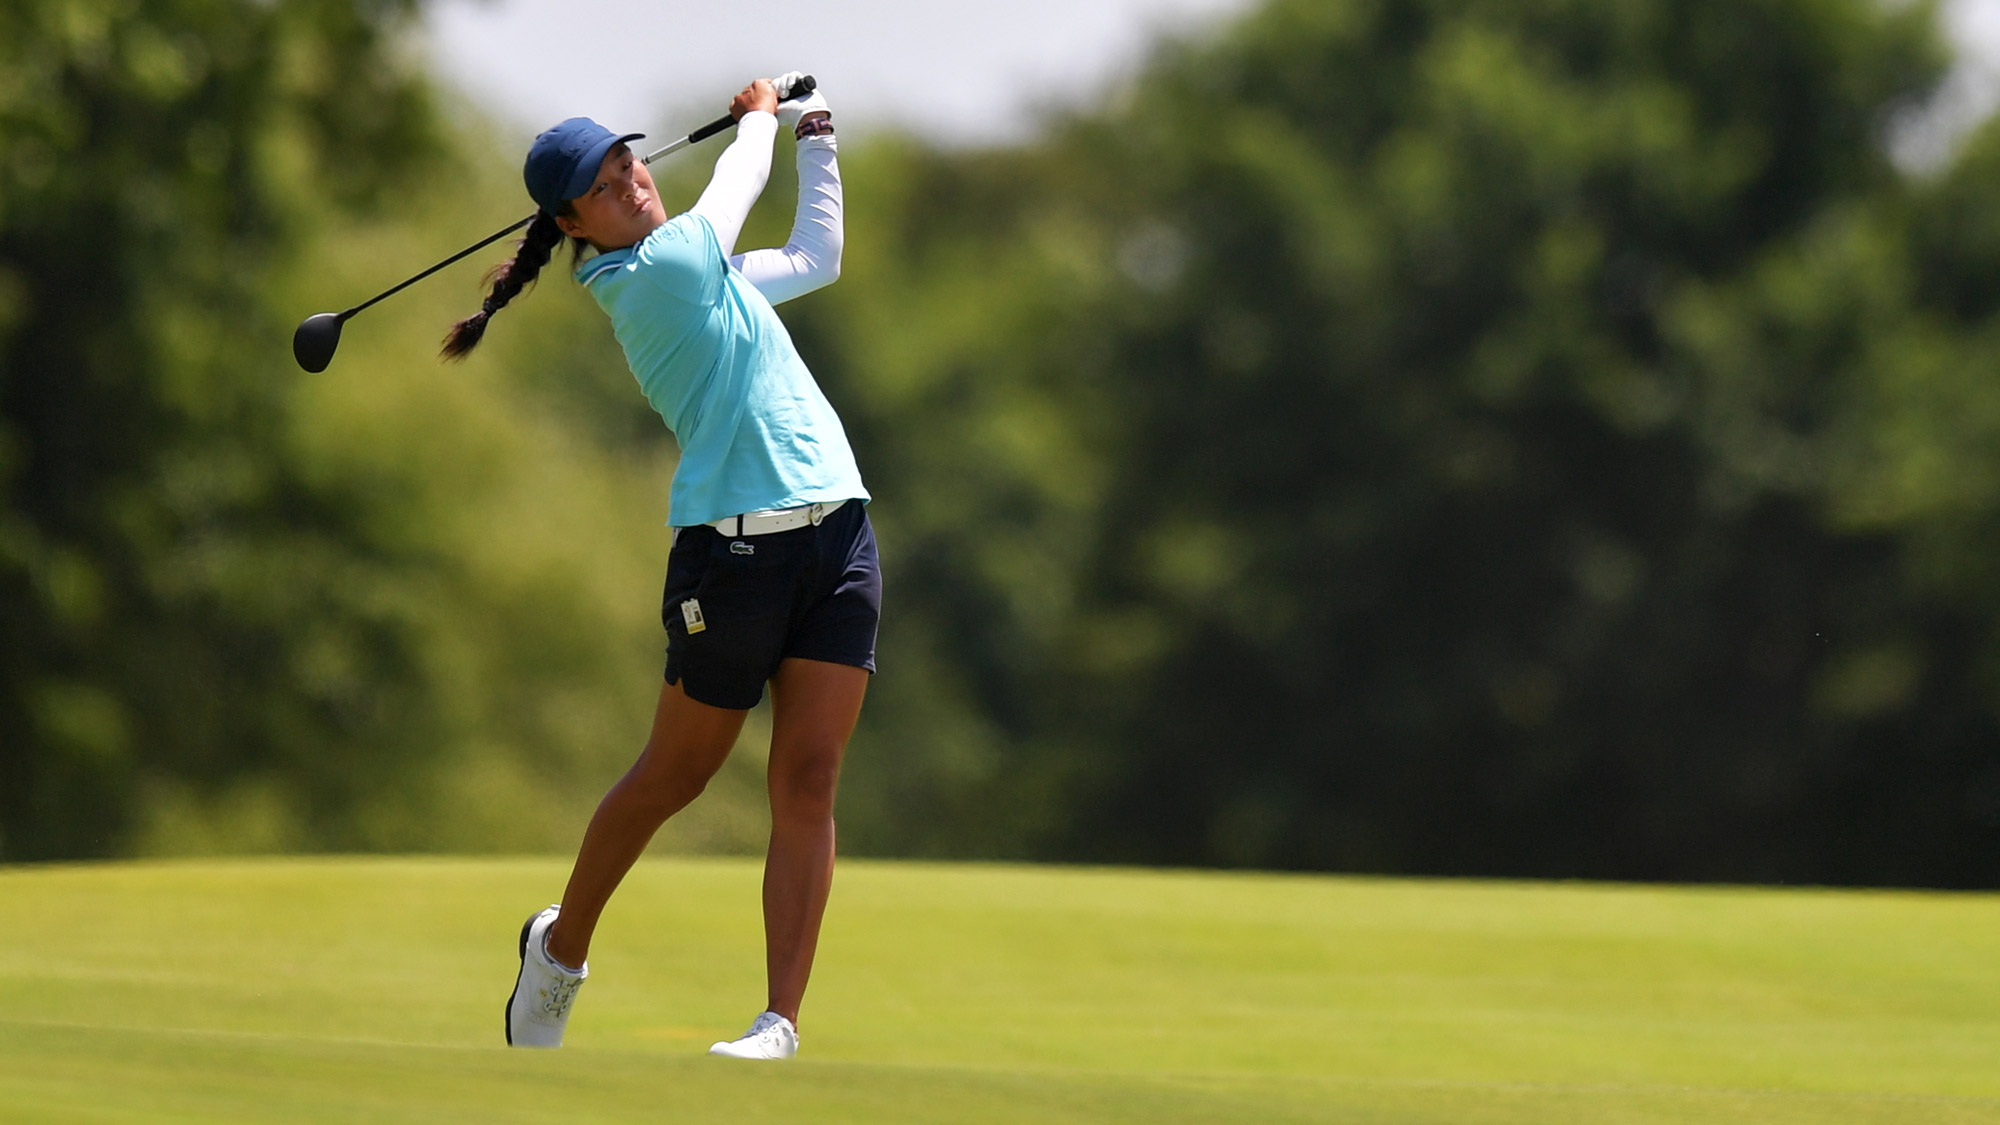 Celine Boutier is in Contention in Arkansas